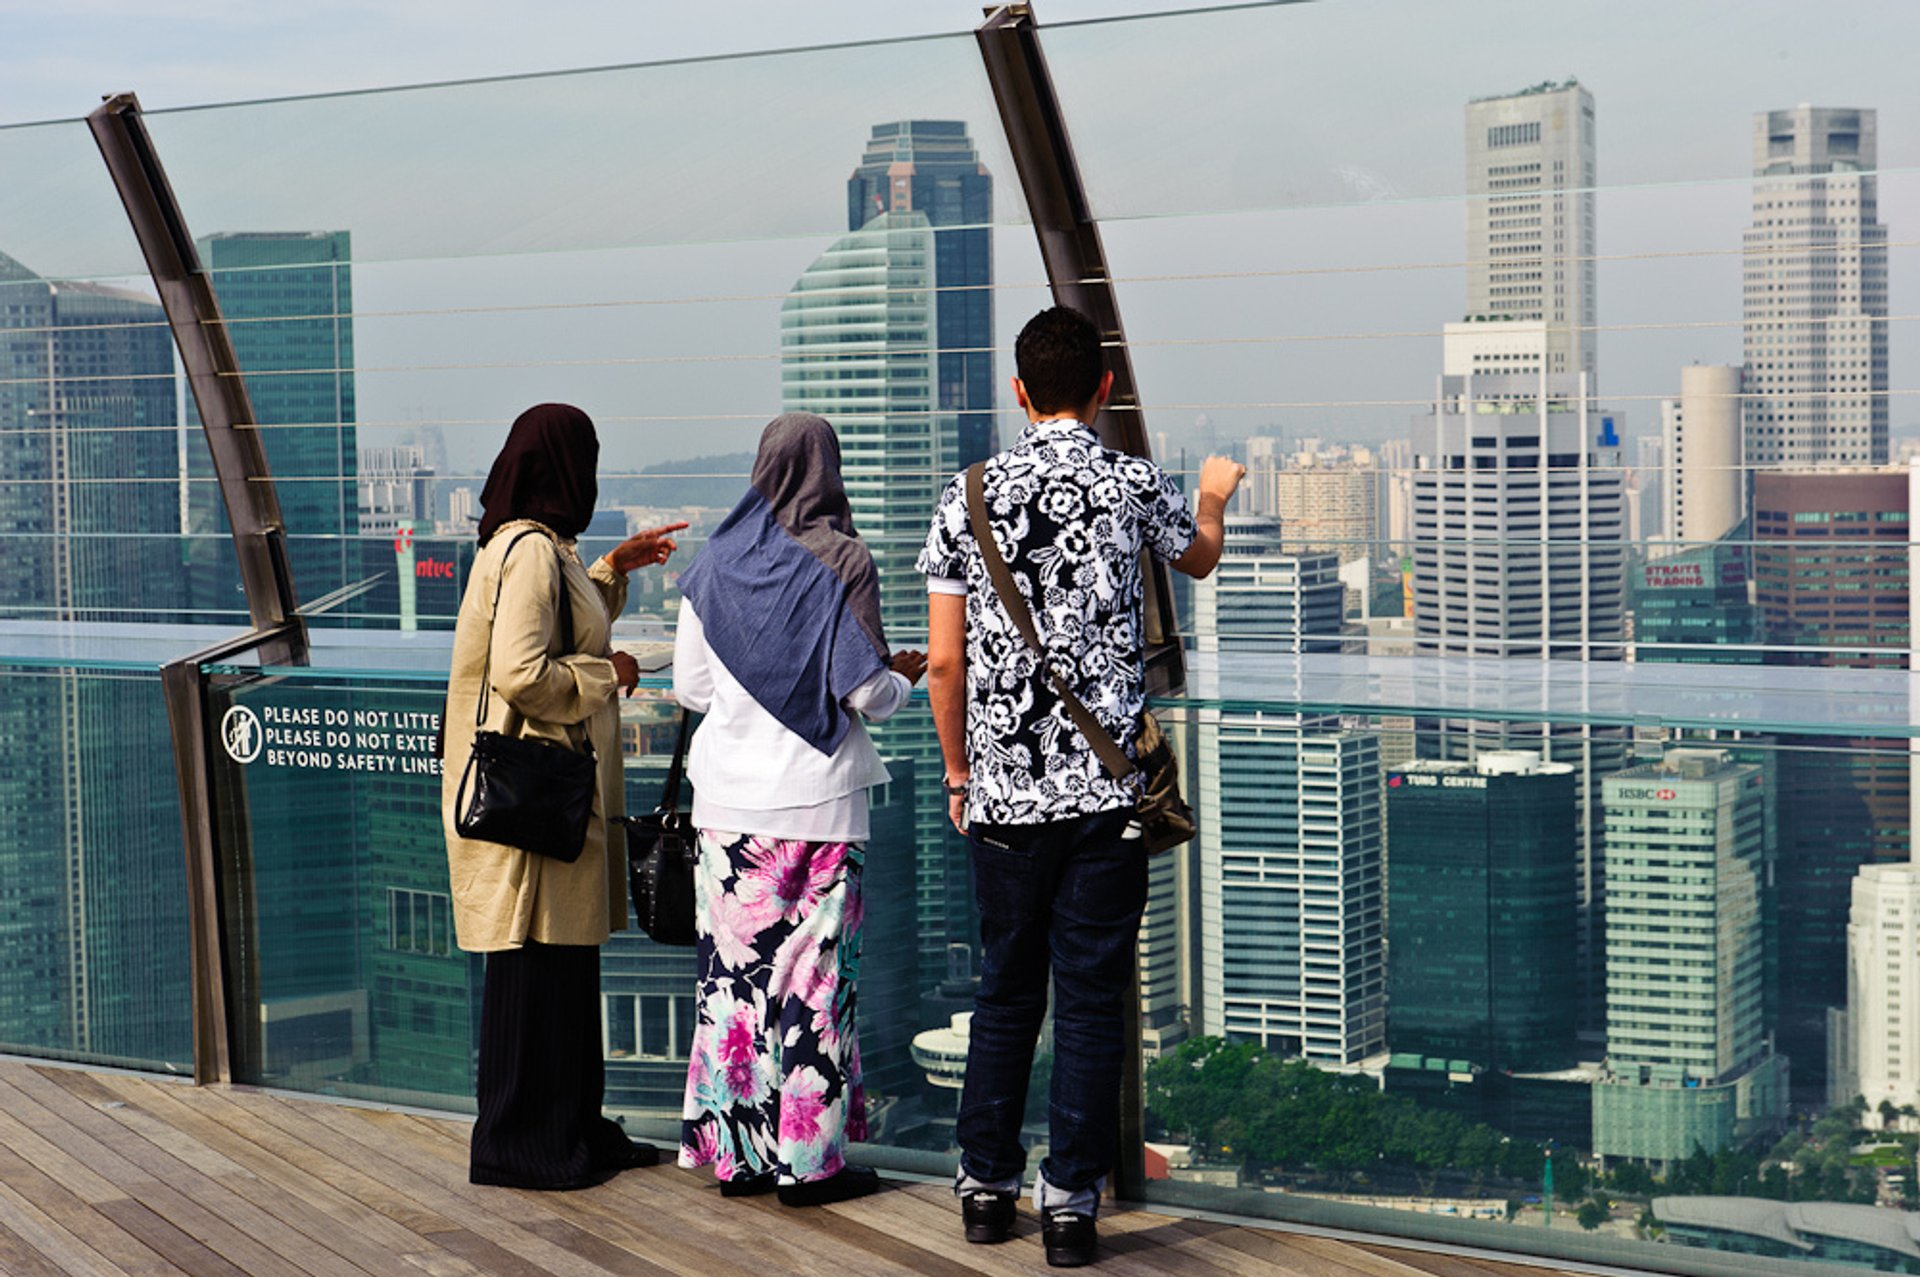 Best time for Marina Bay Sands SkyPark 2020